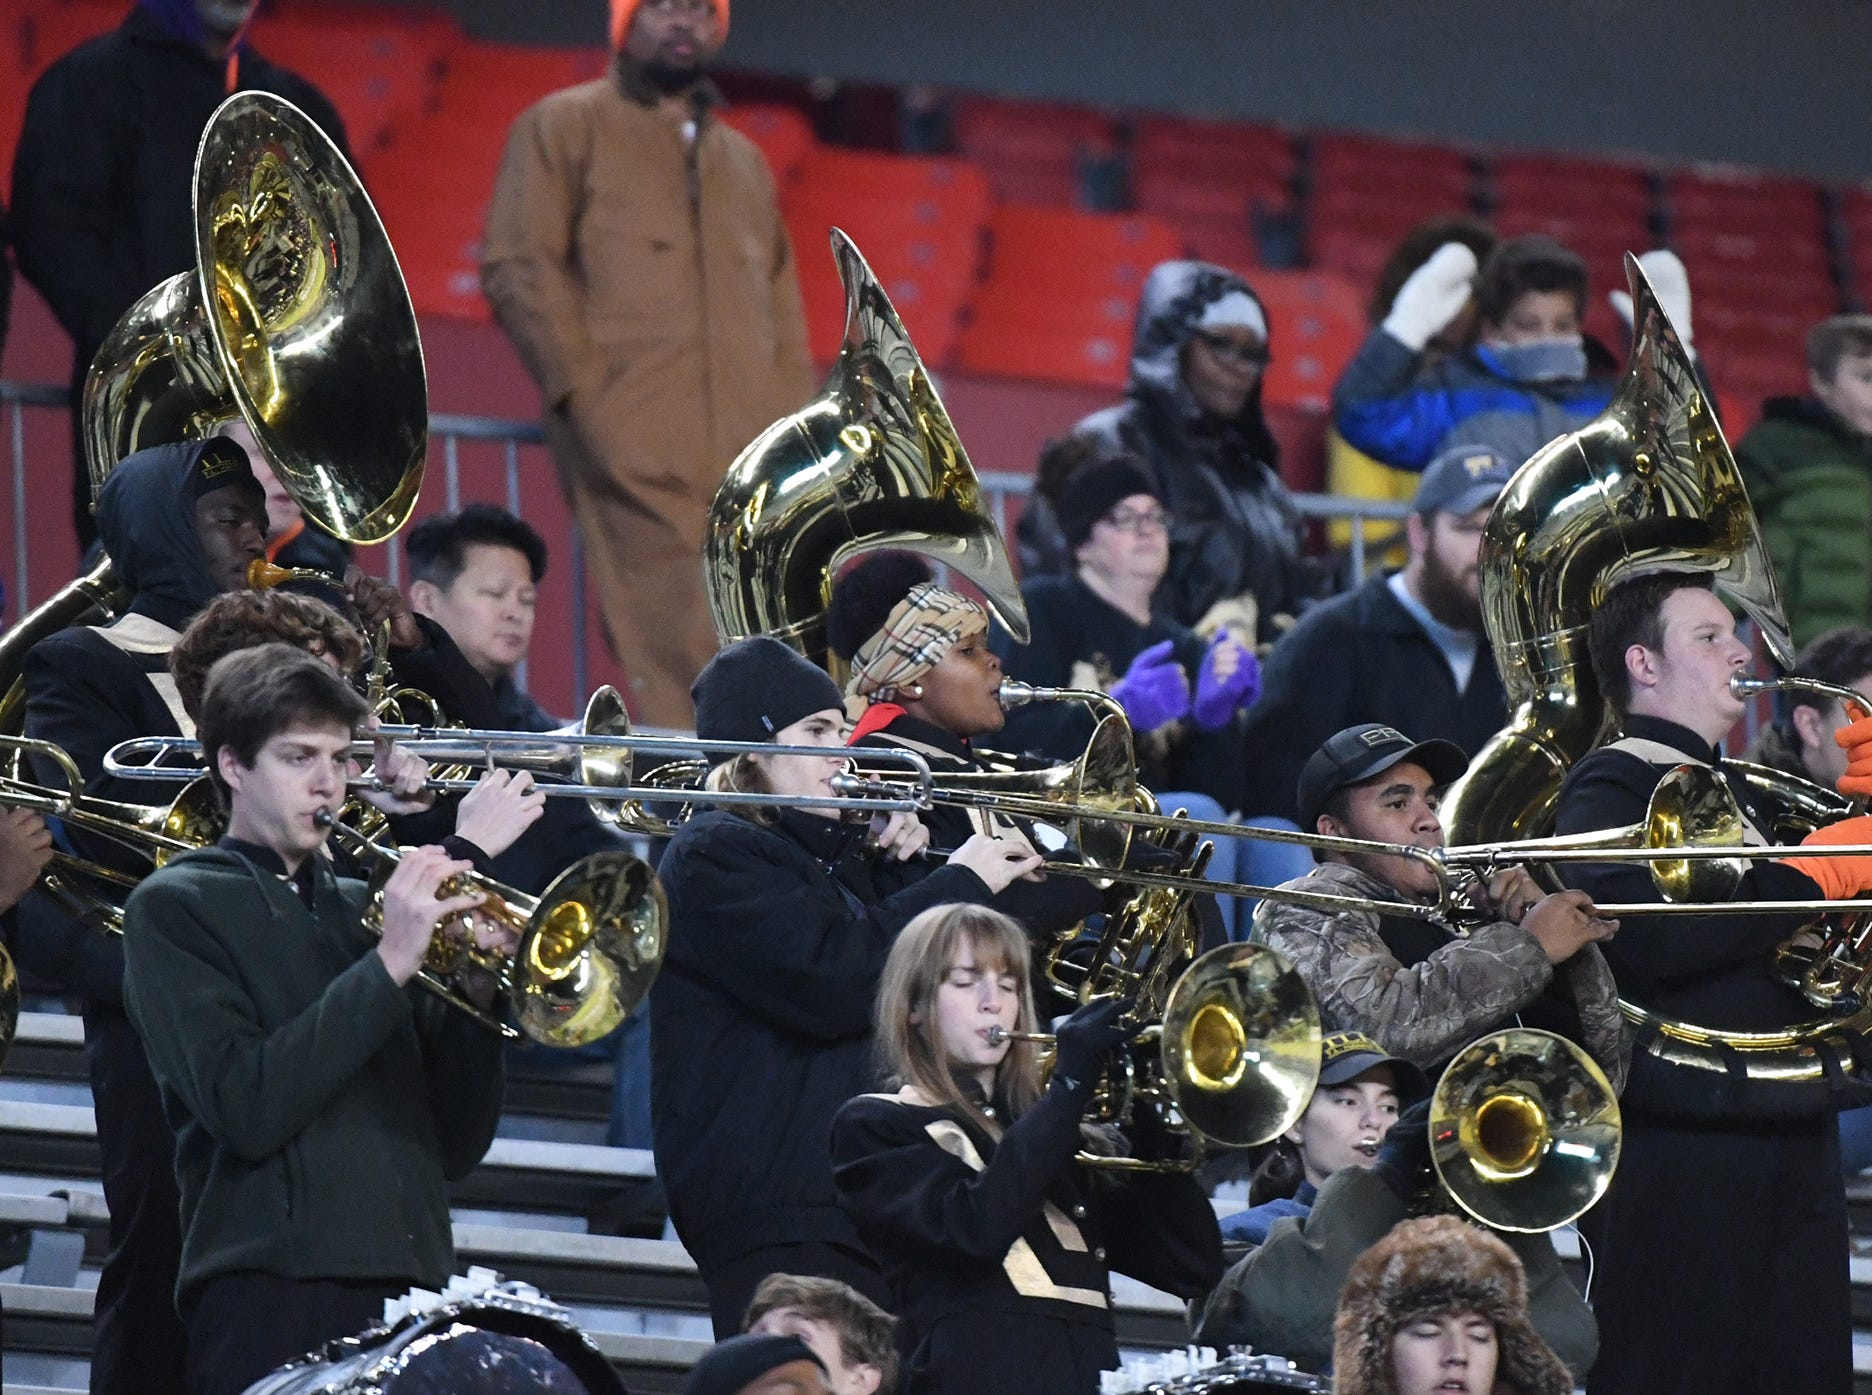 TL Hanna High School band plays for their team playing Dutch Fork High School during the second quarter of the Class AAAAA state championship game at Williams-Brice Stadium in Columbia Saturday, December 8, 2018.